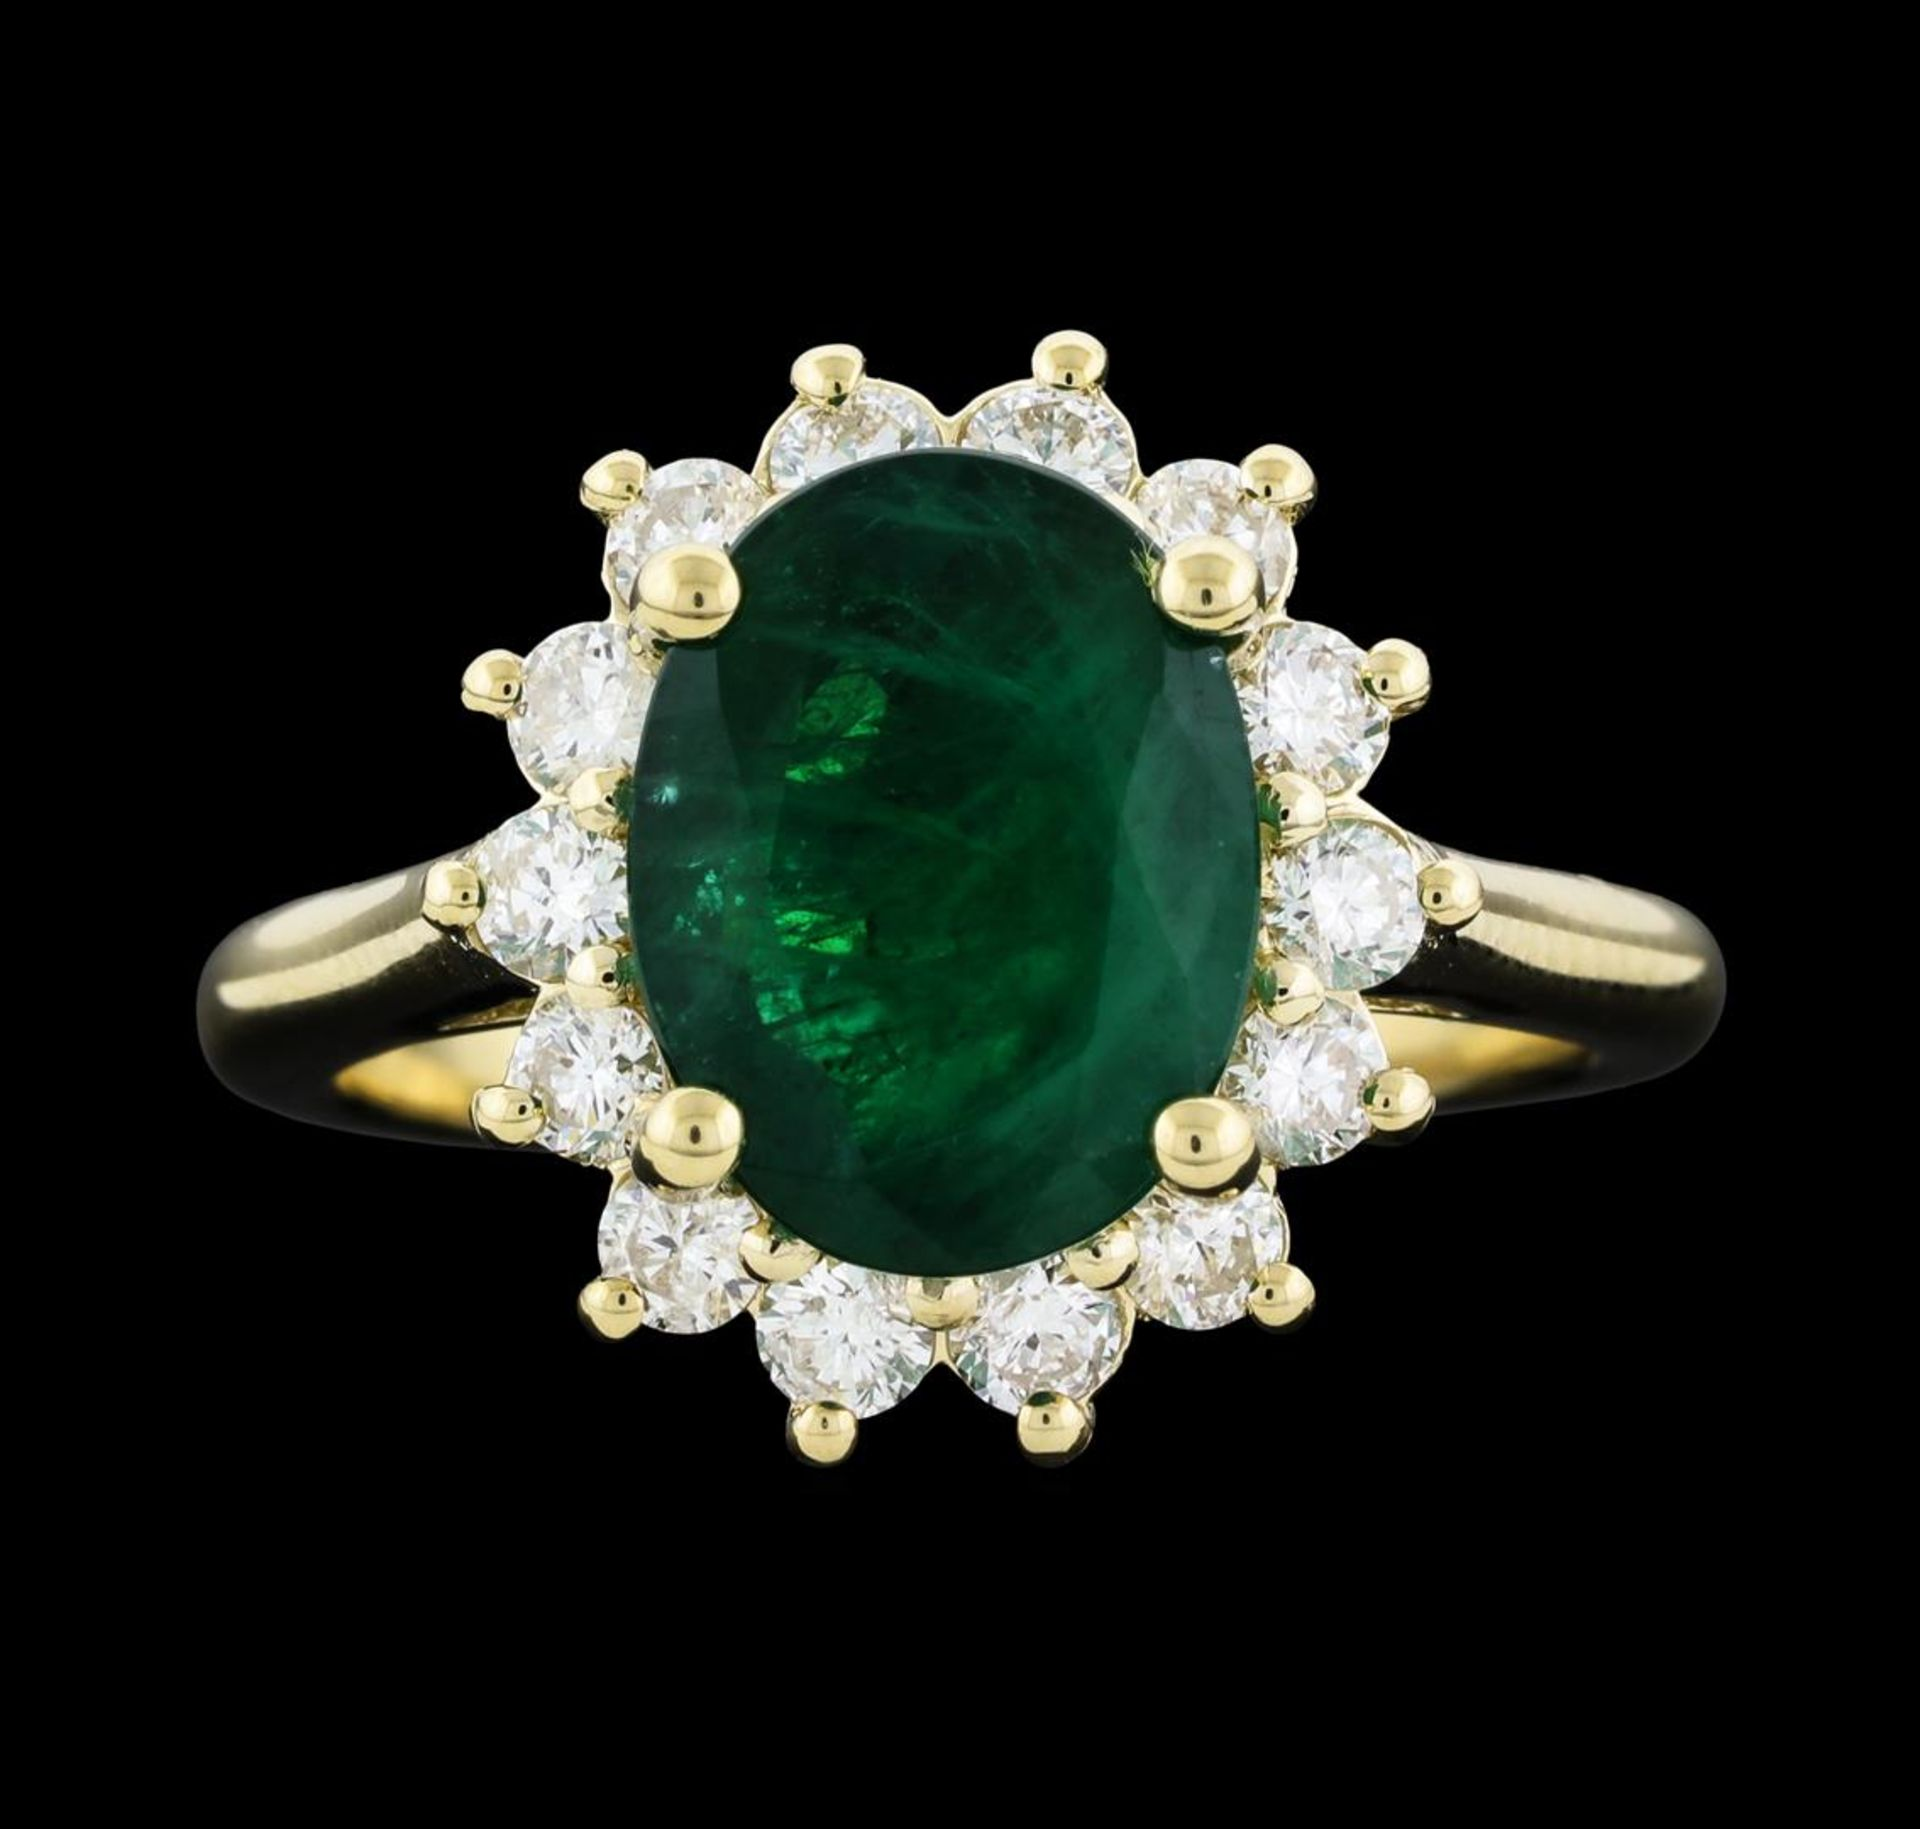 3.40 ctw Emerald and Diamond Ring - 14KT Yellow Gold - Image 2 of 5